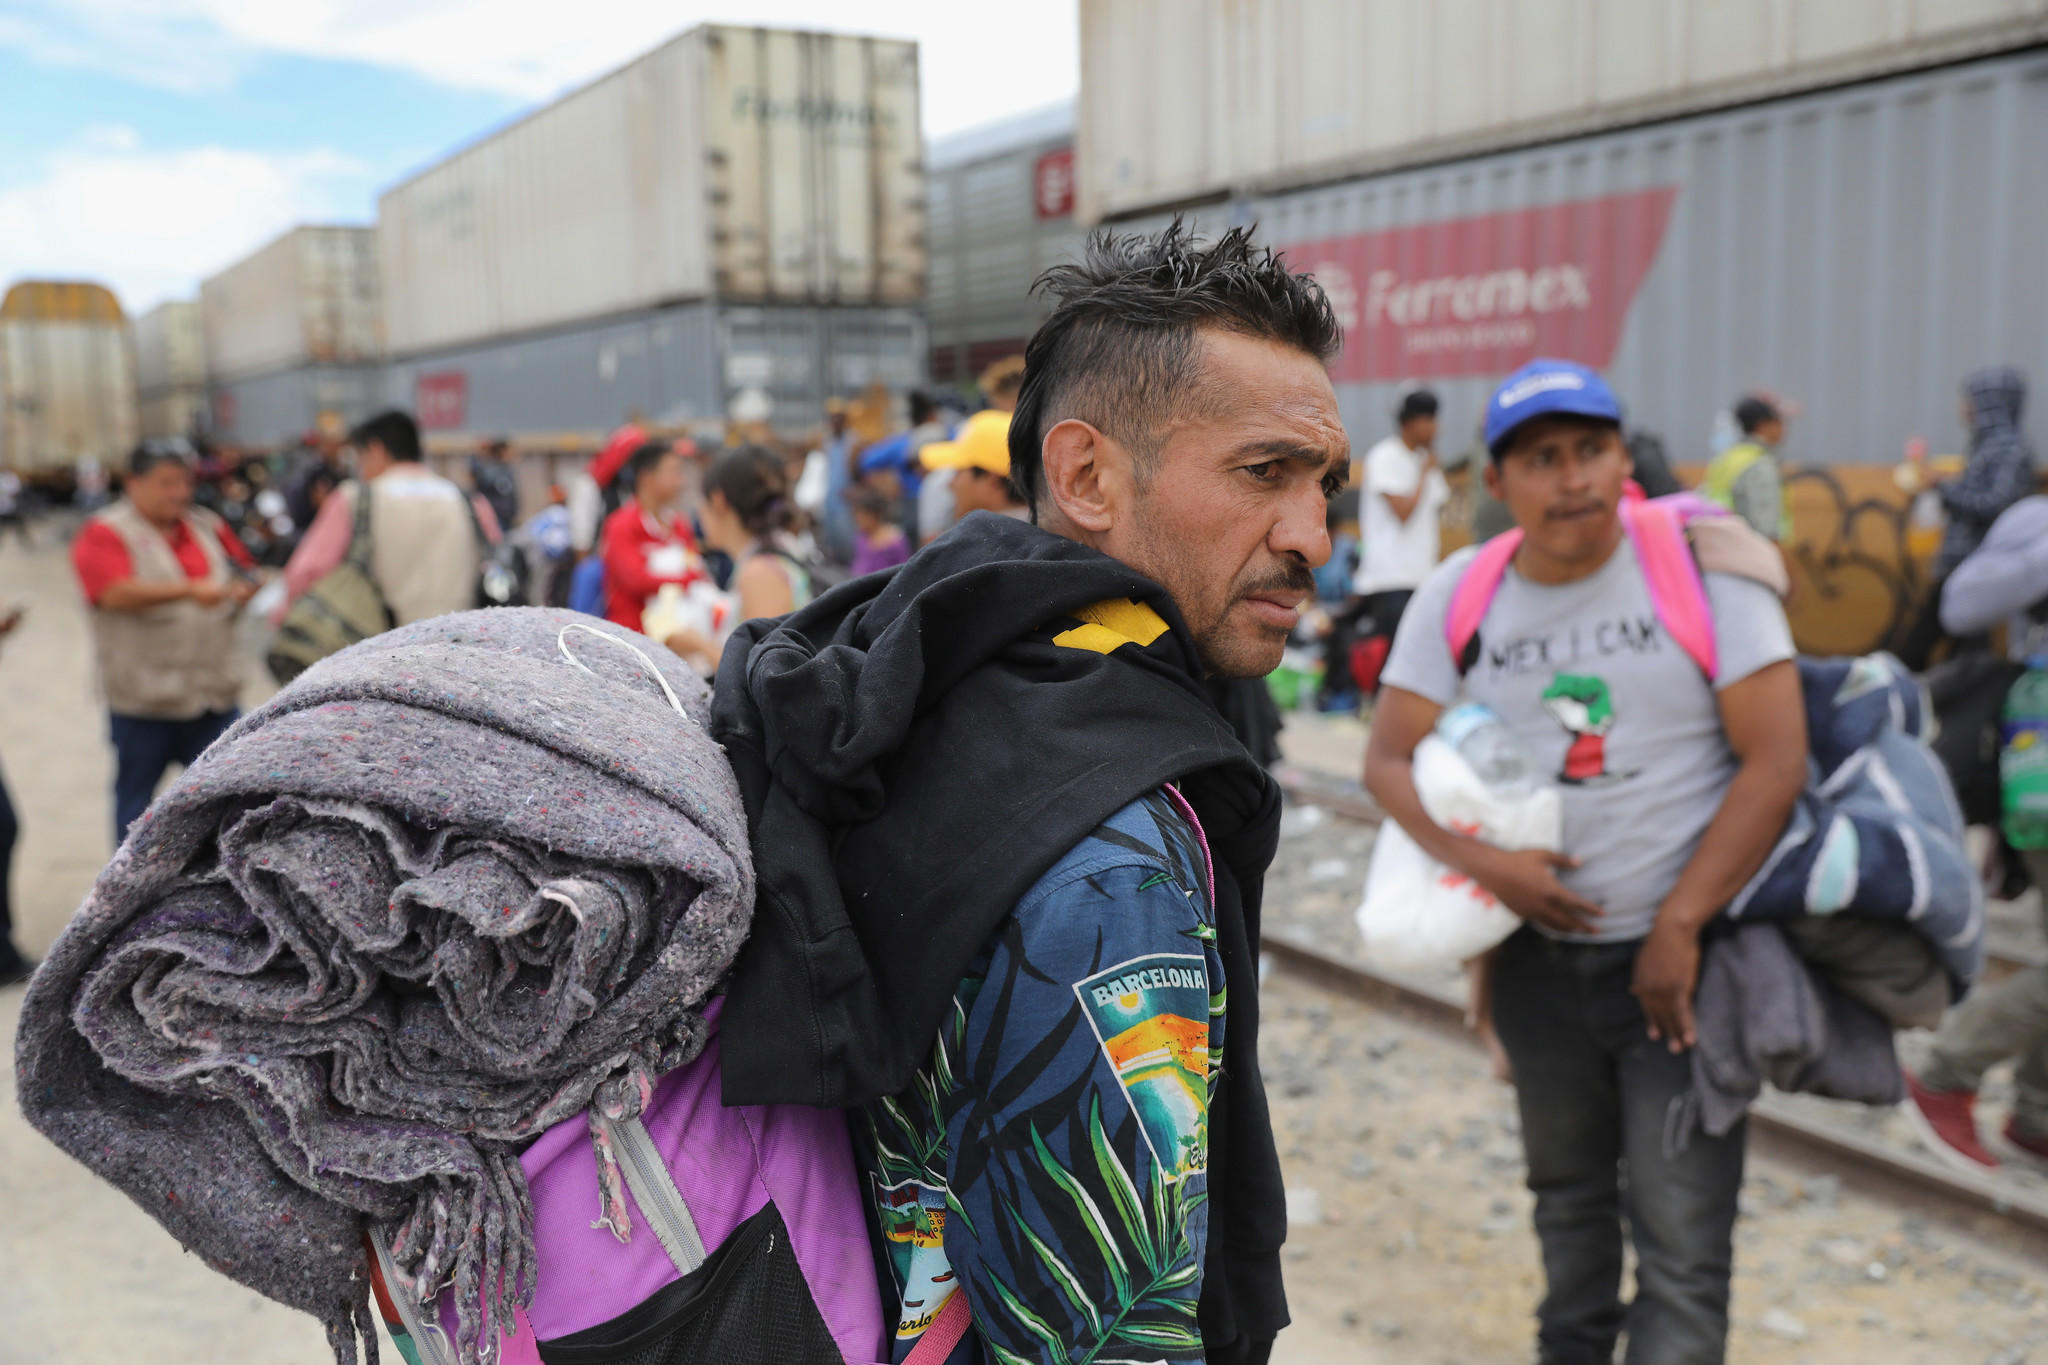 Migrant caravan reaches US/Mexico border town of Tijuana